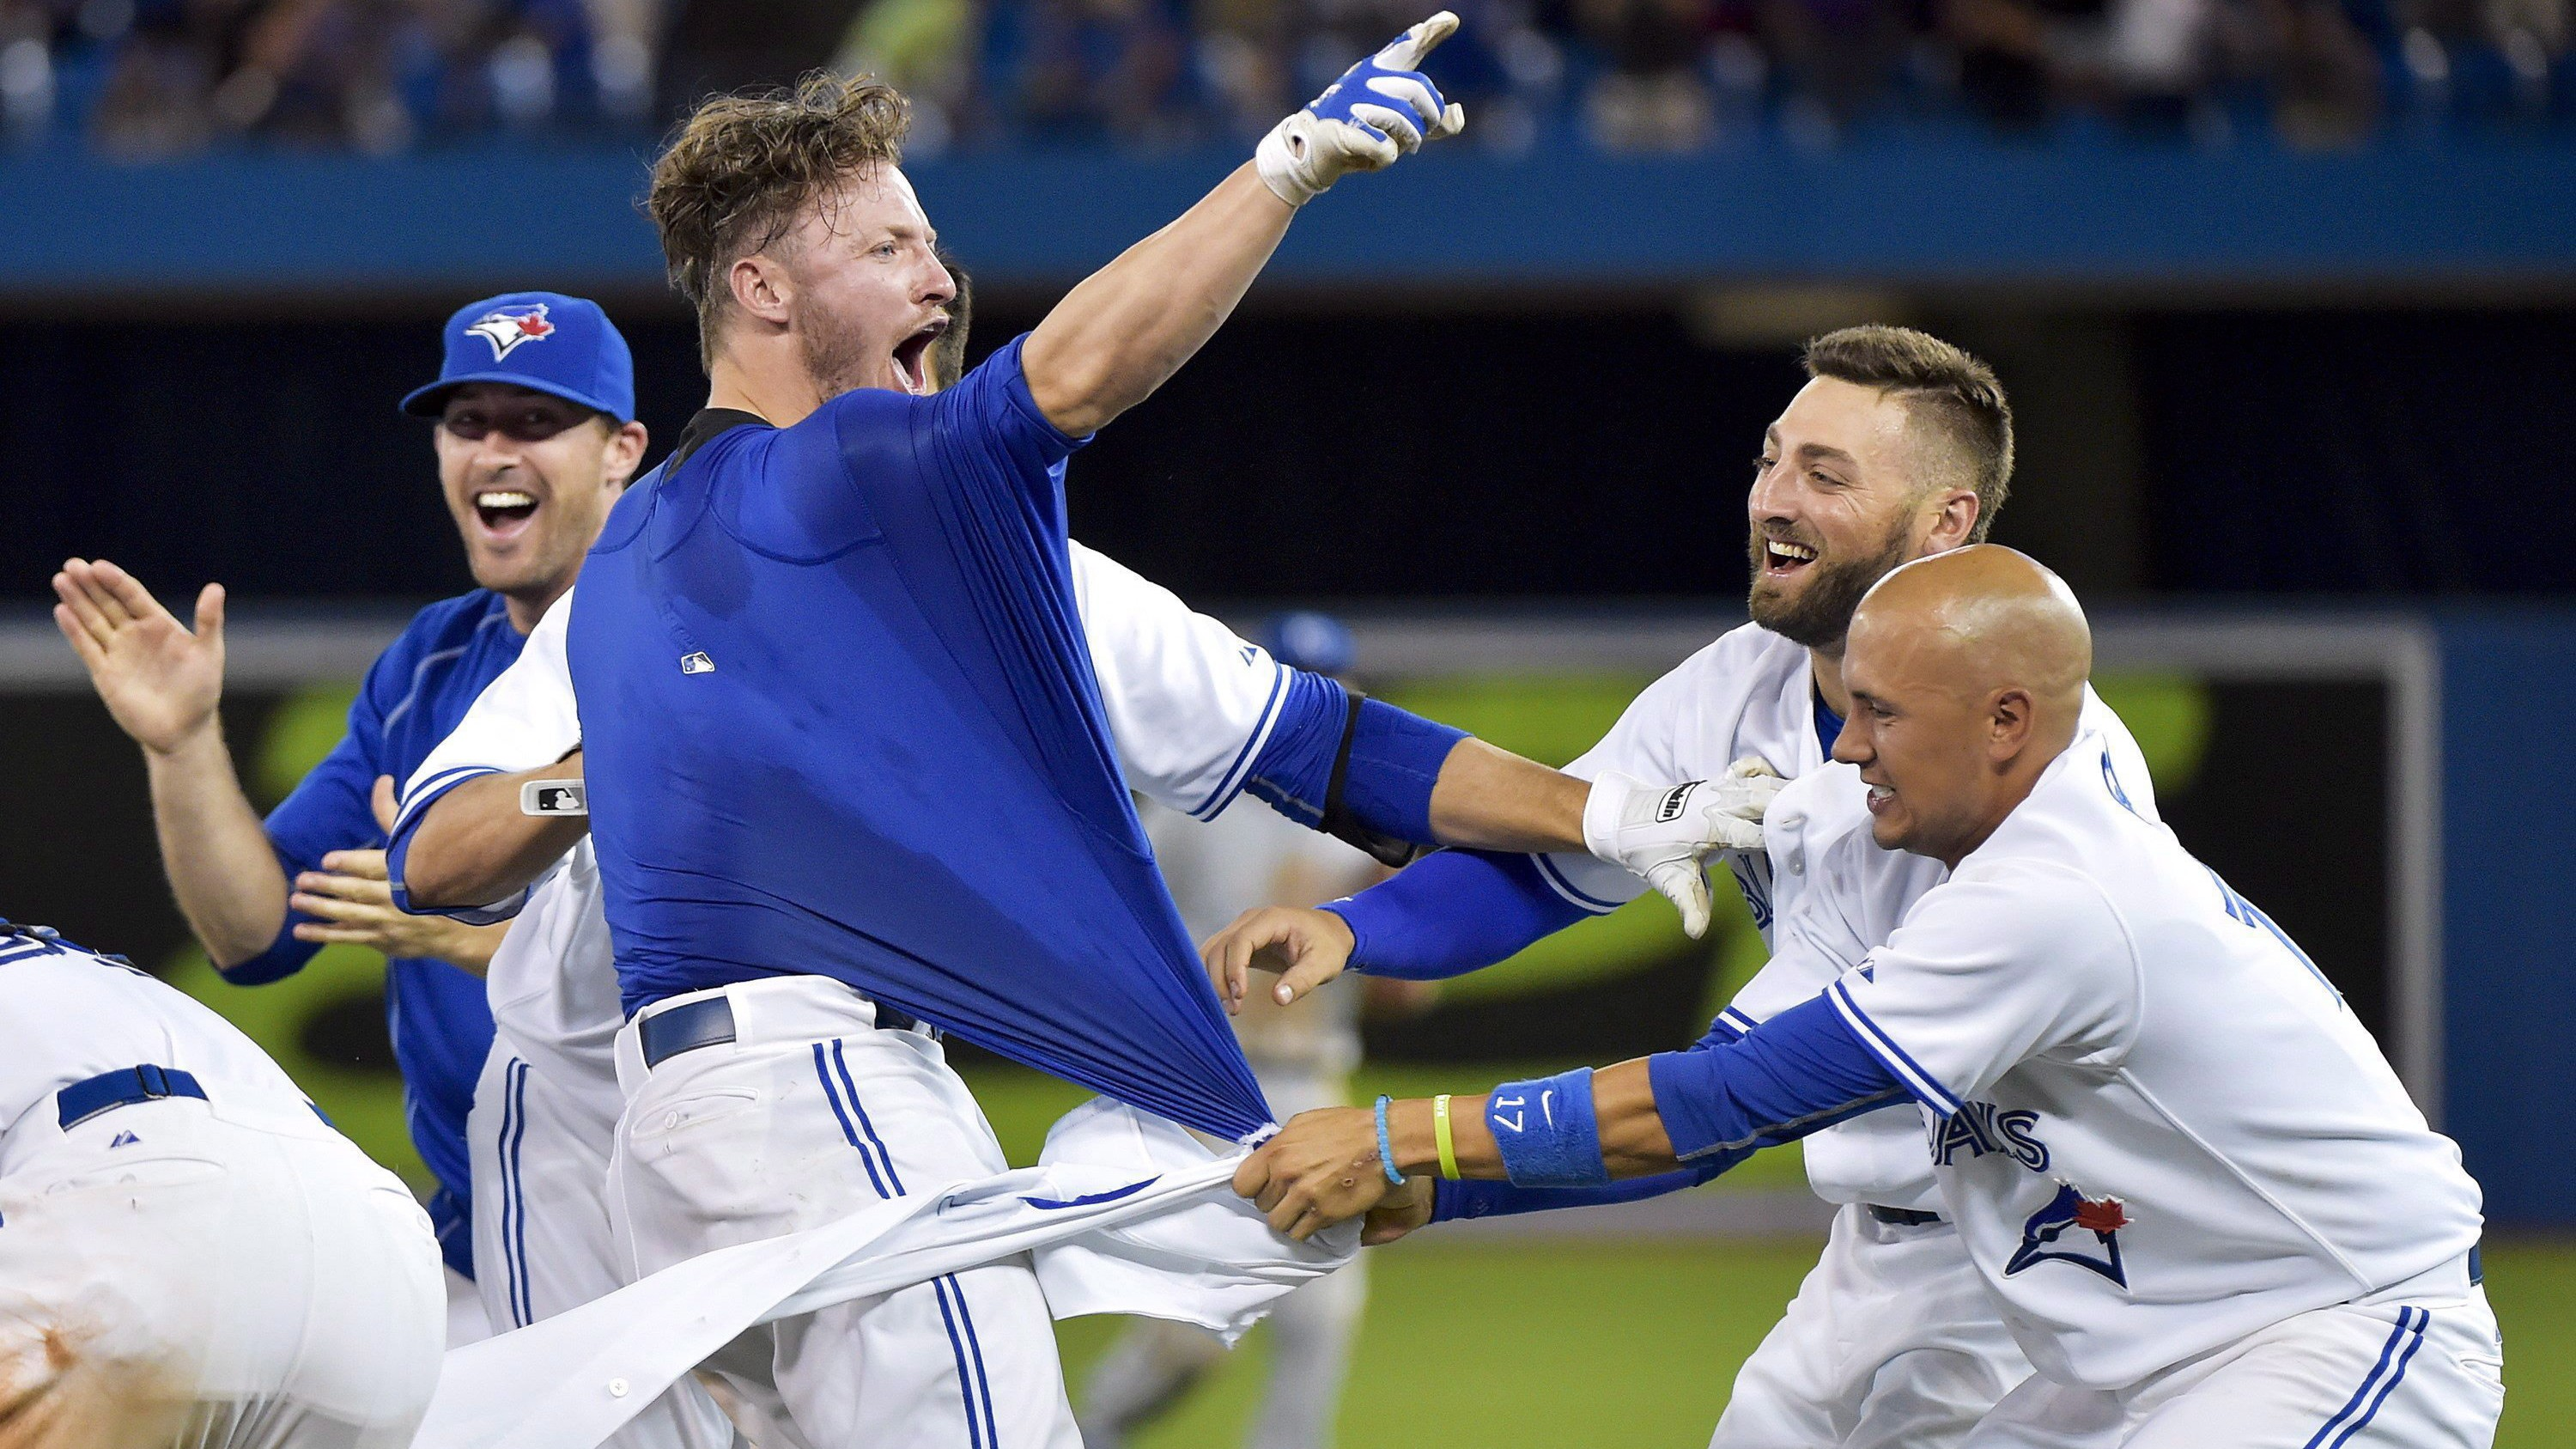 Toronto Blue Jays third baseman Josh Donaldson, second right reacts with teammates, after hitting a RBI single to defeat the Kansas City Royals during 11th inning AL baseball action in Toronto on July 31, 2015. THE CANADIAN PRESS/Nathan Denette